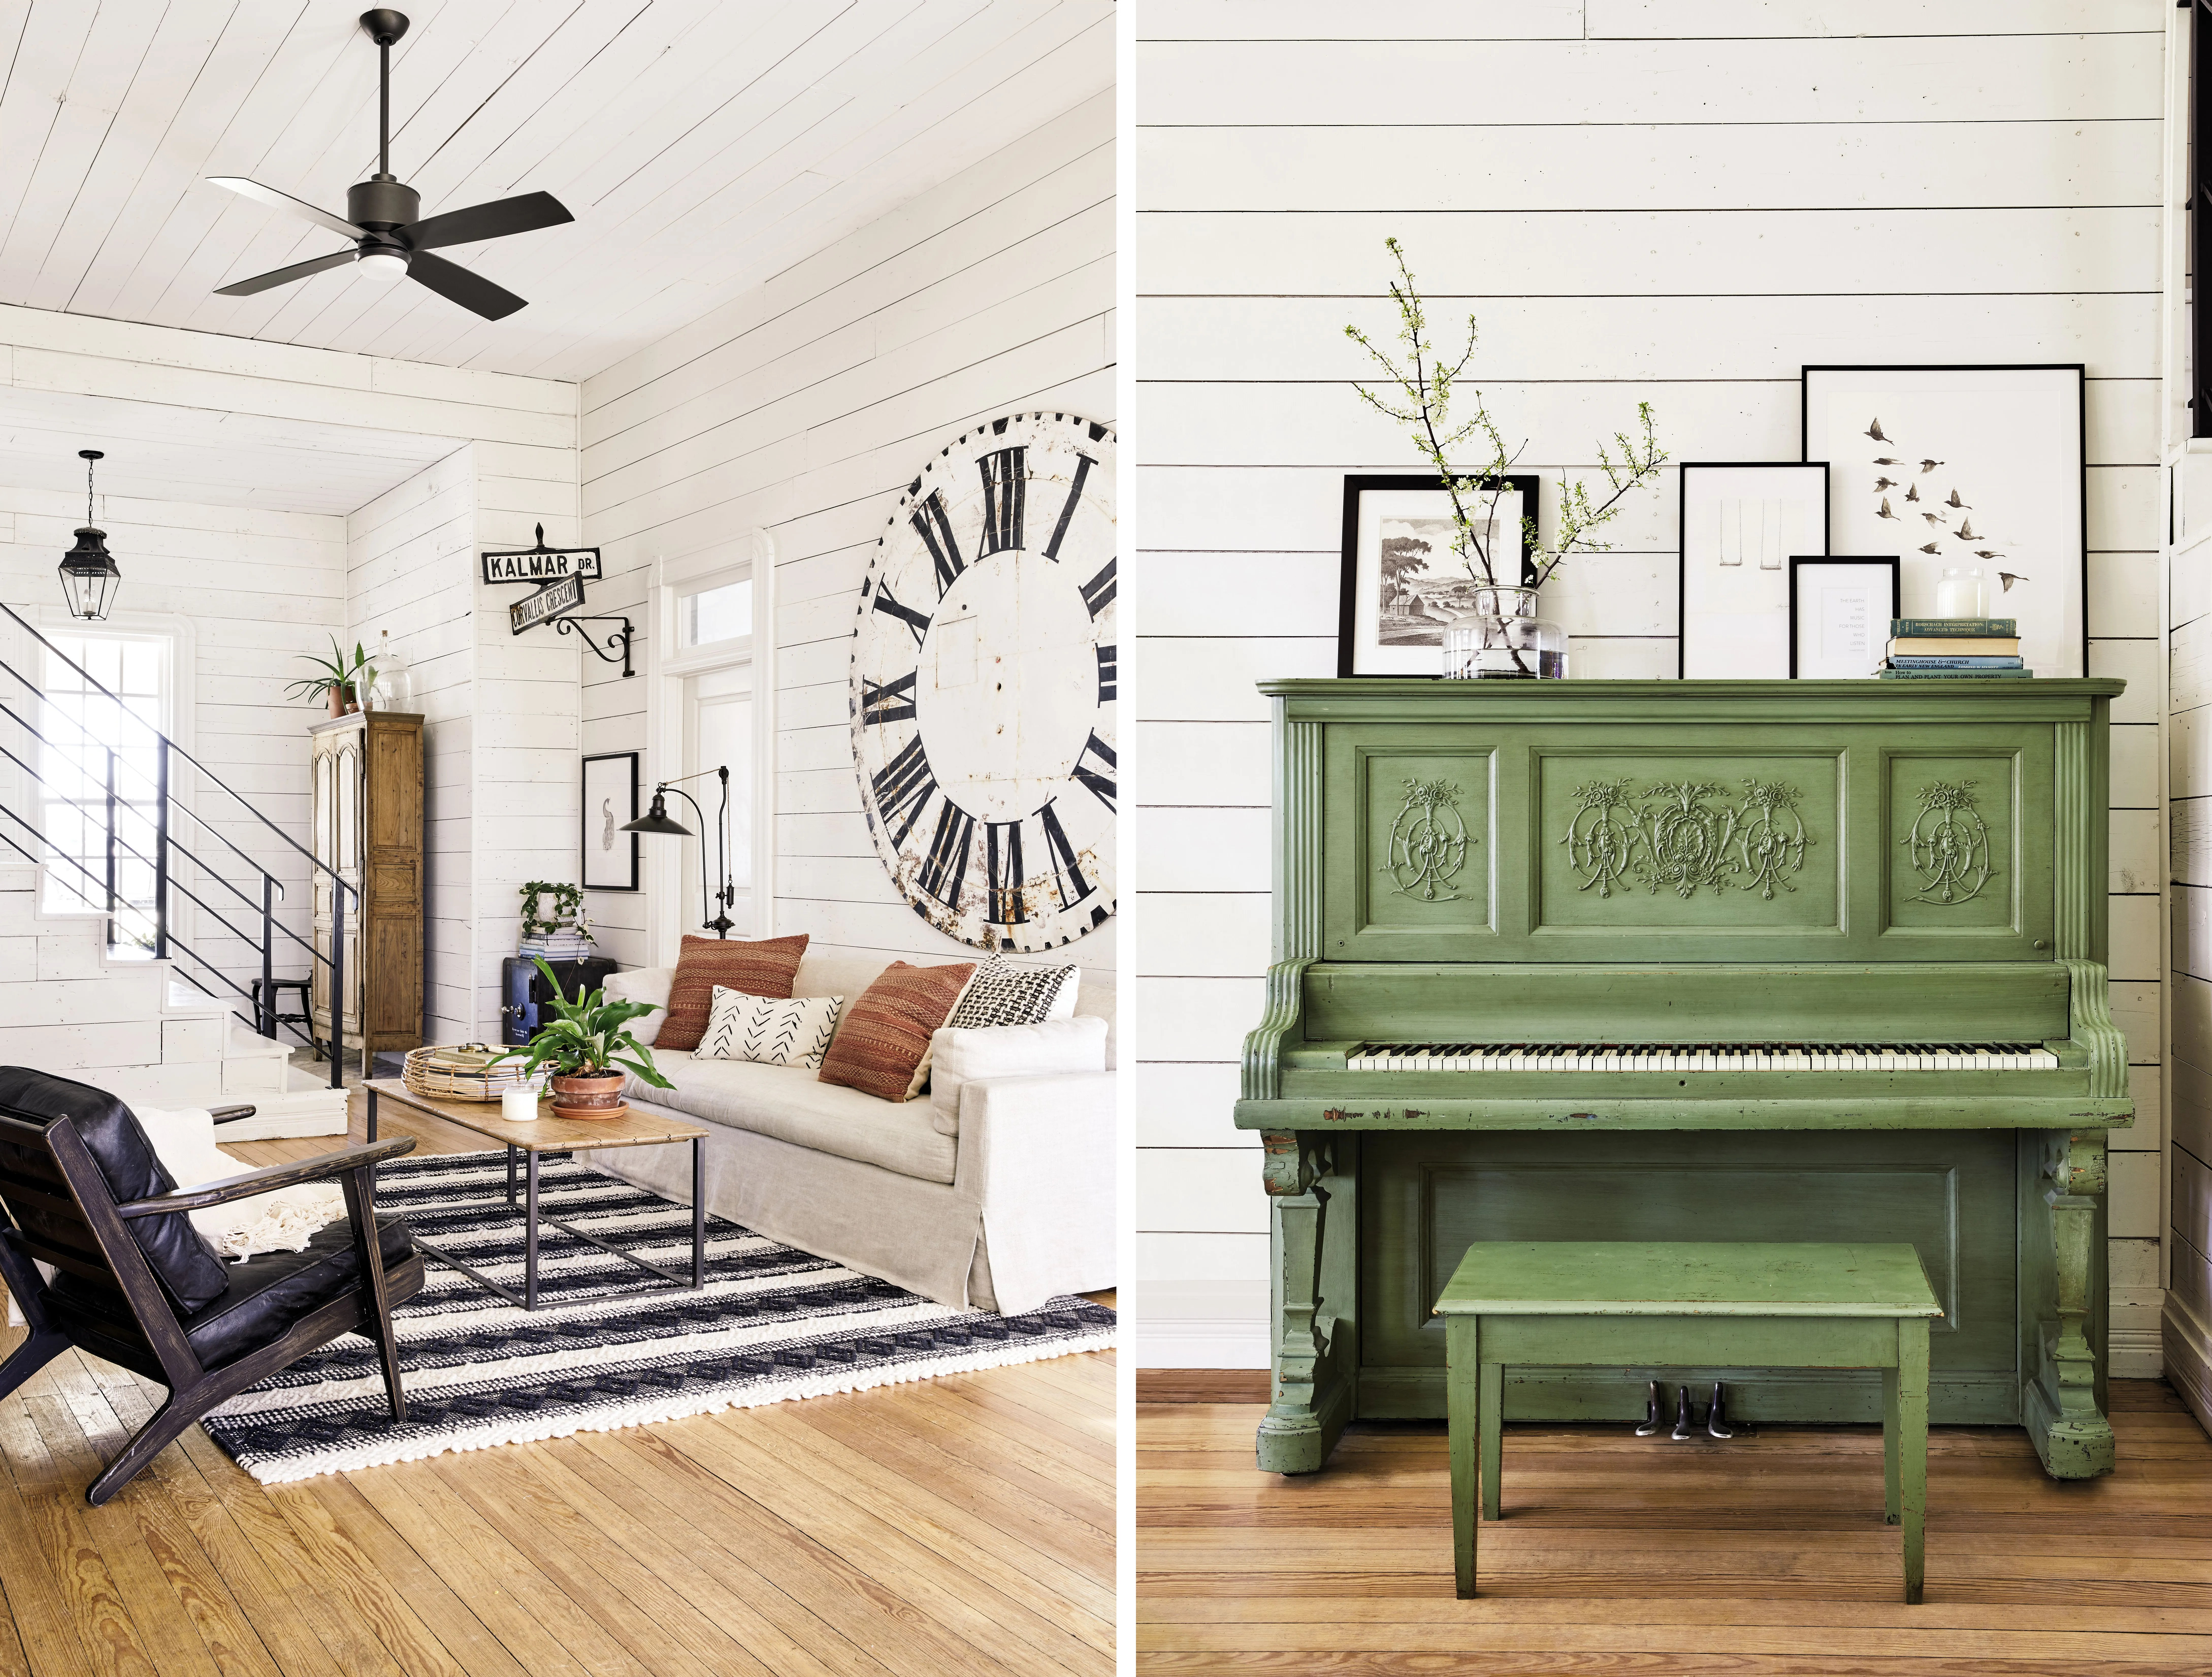 Joanna Gaines Opens The Door To Her Dreamy Family Farmhouse Architectural Digest